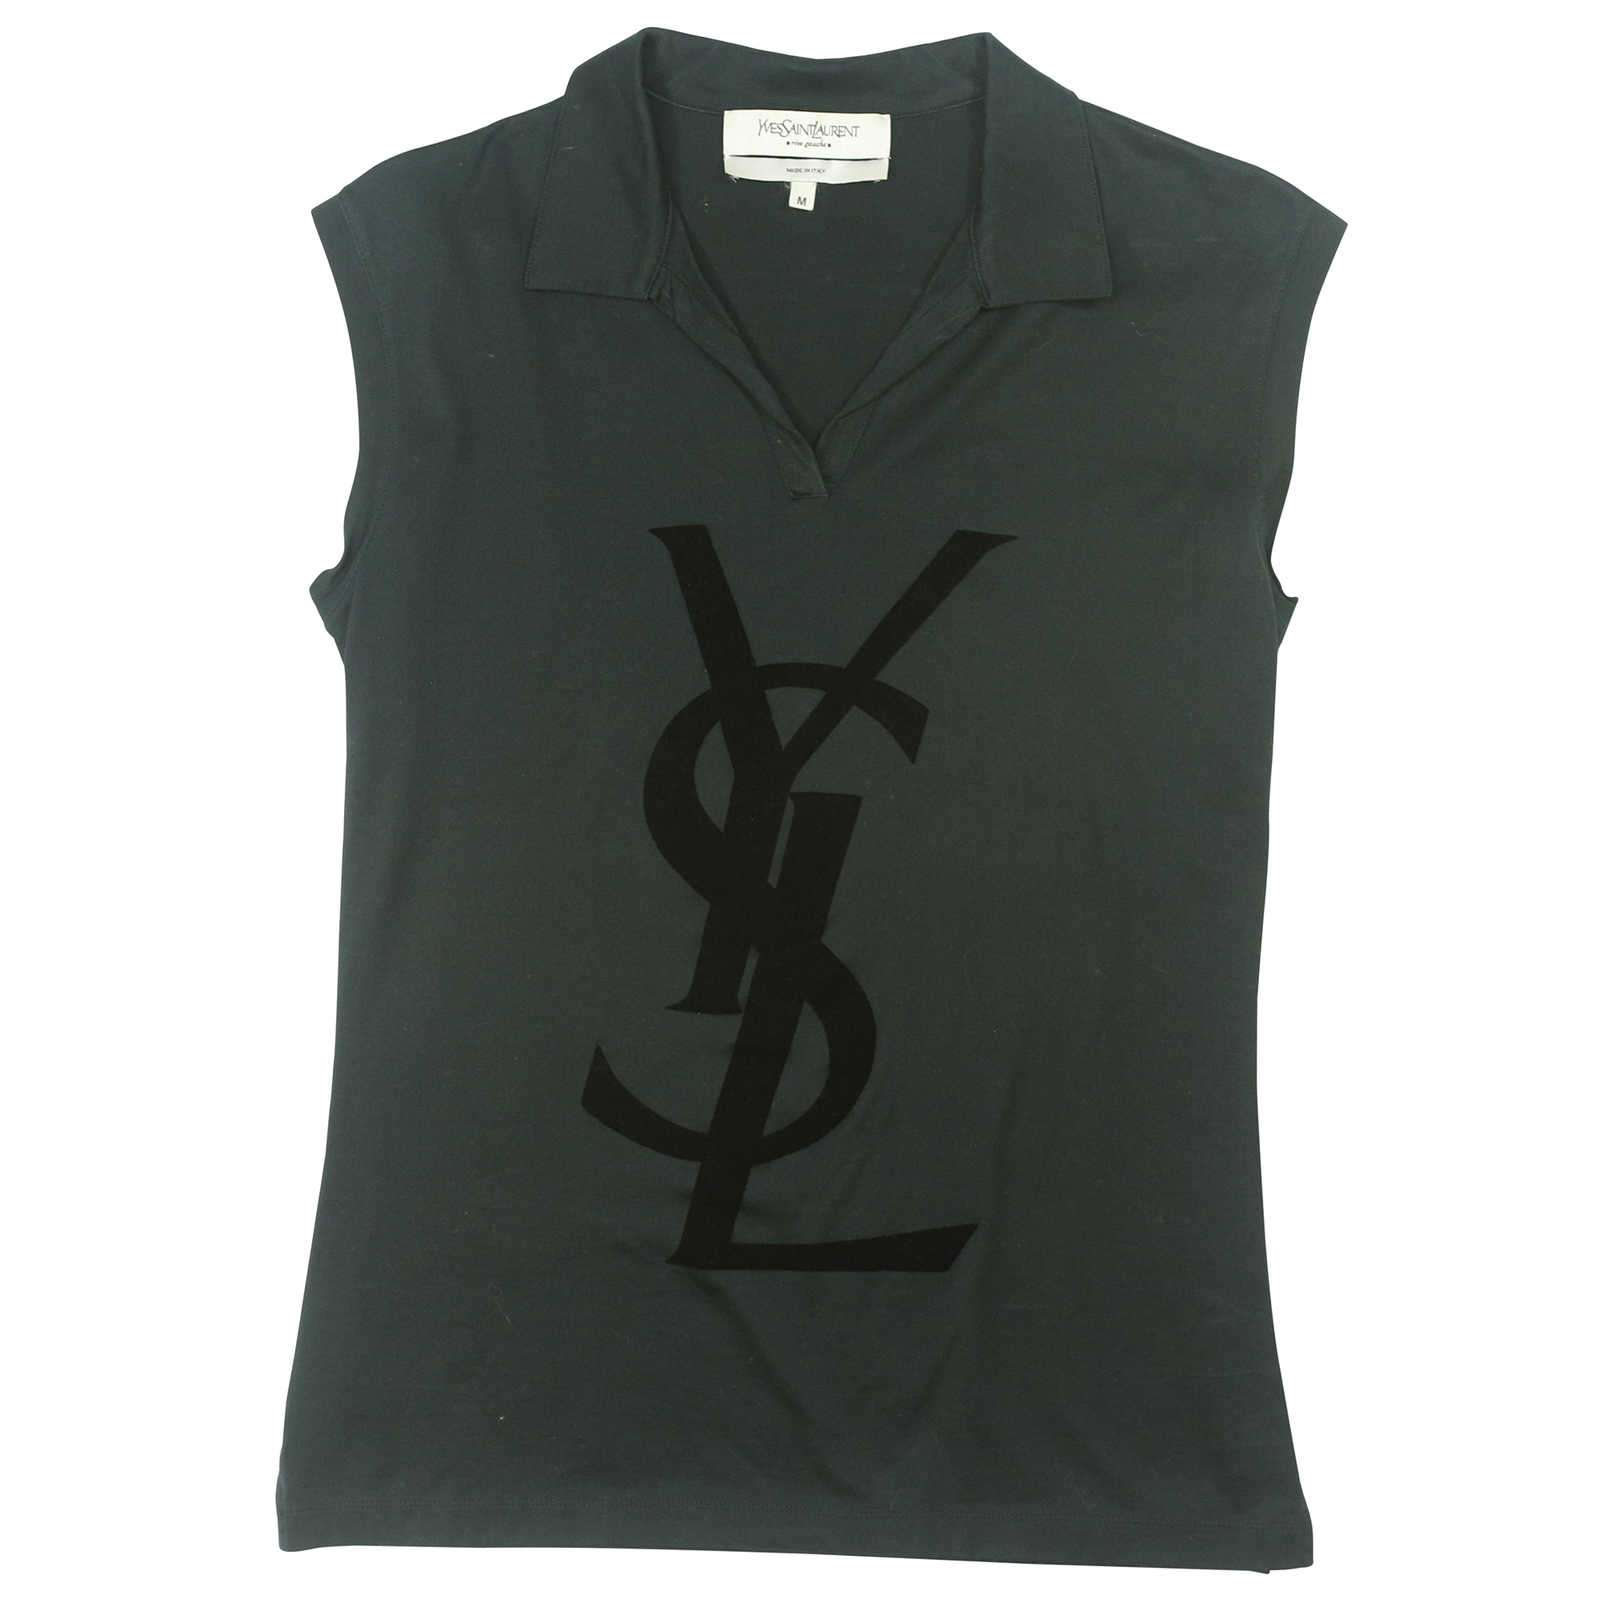 af249384bd829 Authentic Second Hand Yves Saint Laurent Collared T-Shirt (PSS-014-00015 ...